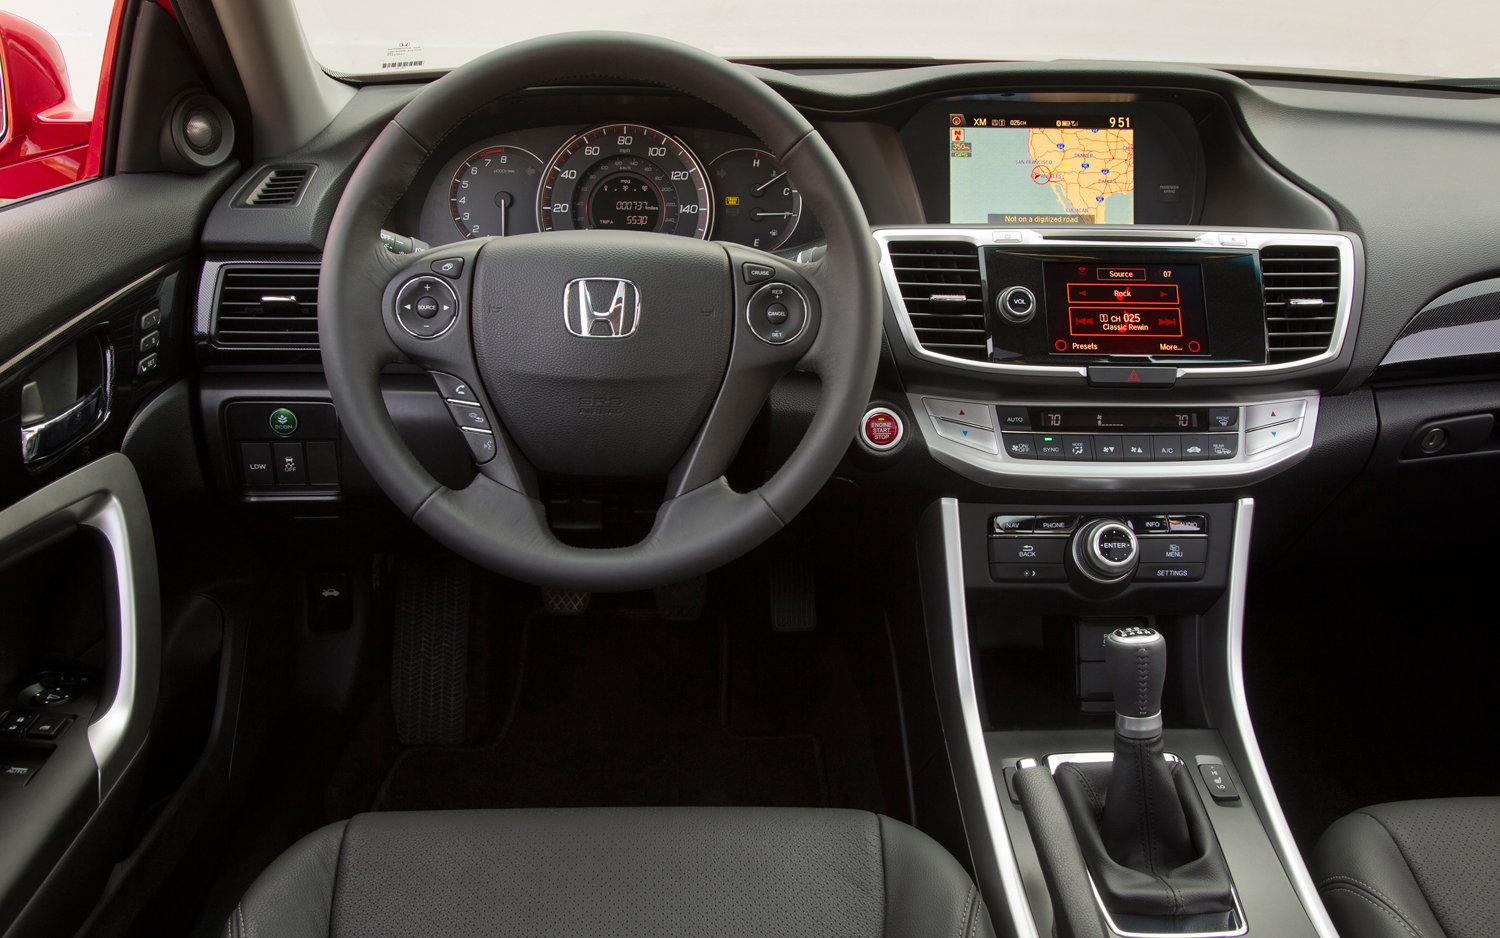 Captivating 2013 Honda Accord Interior